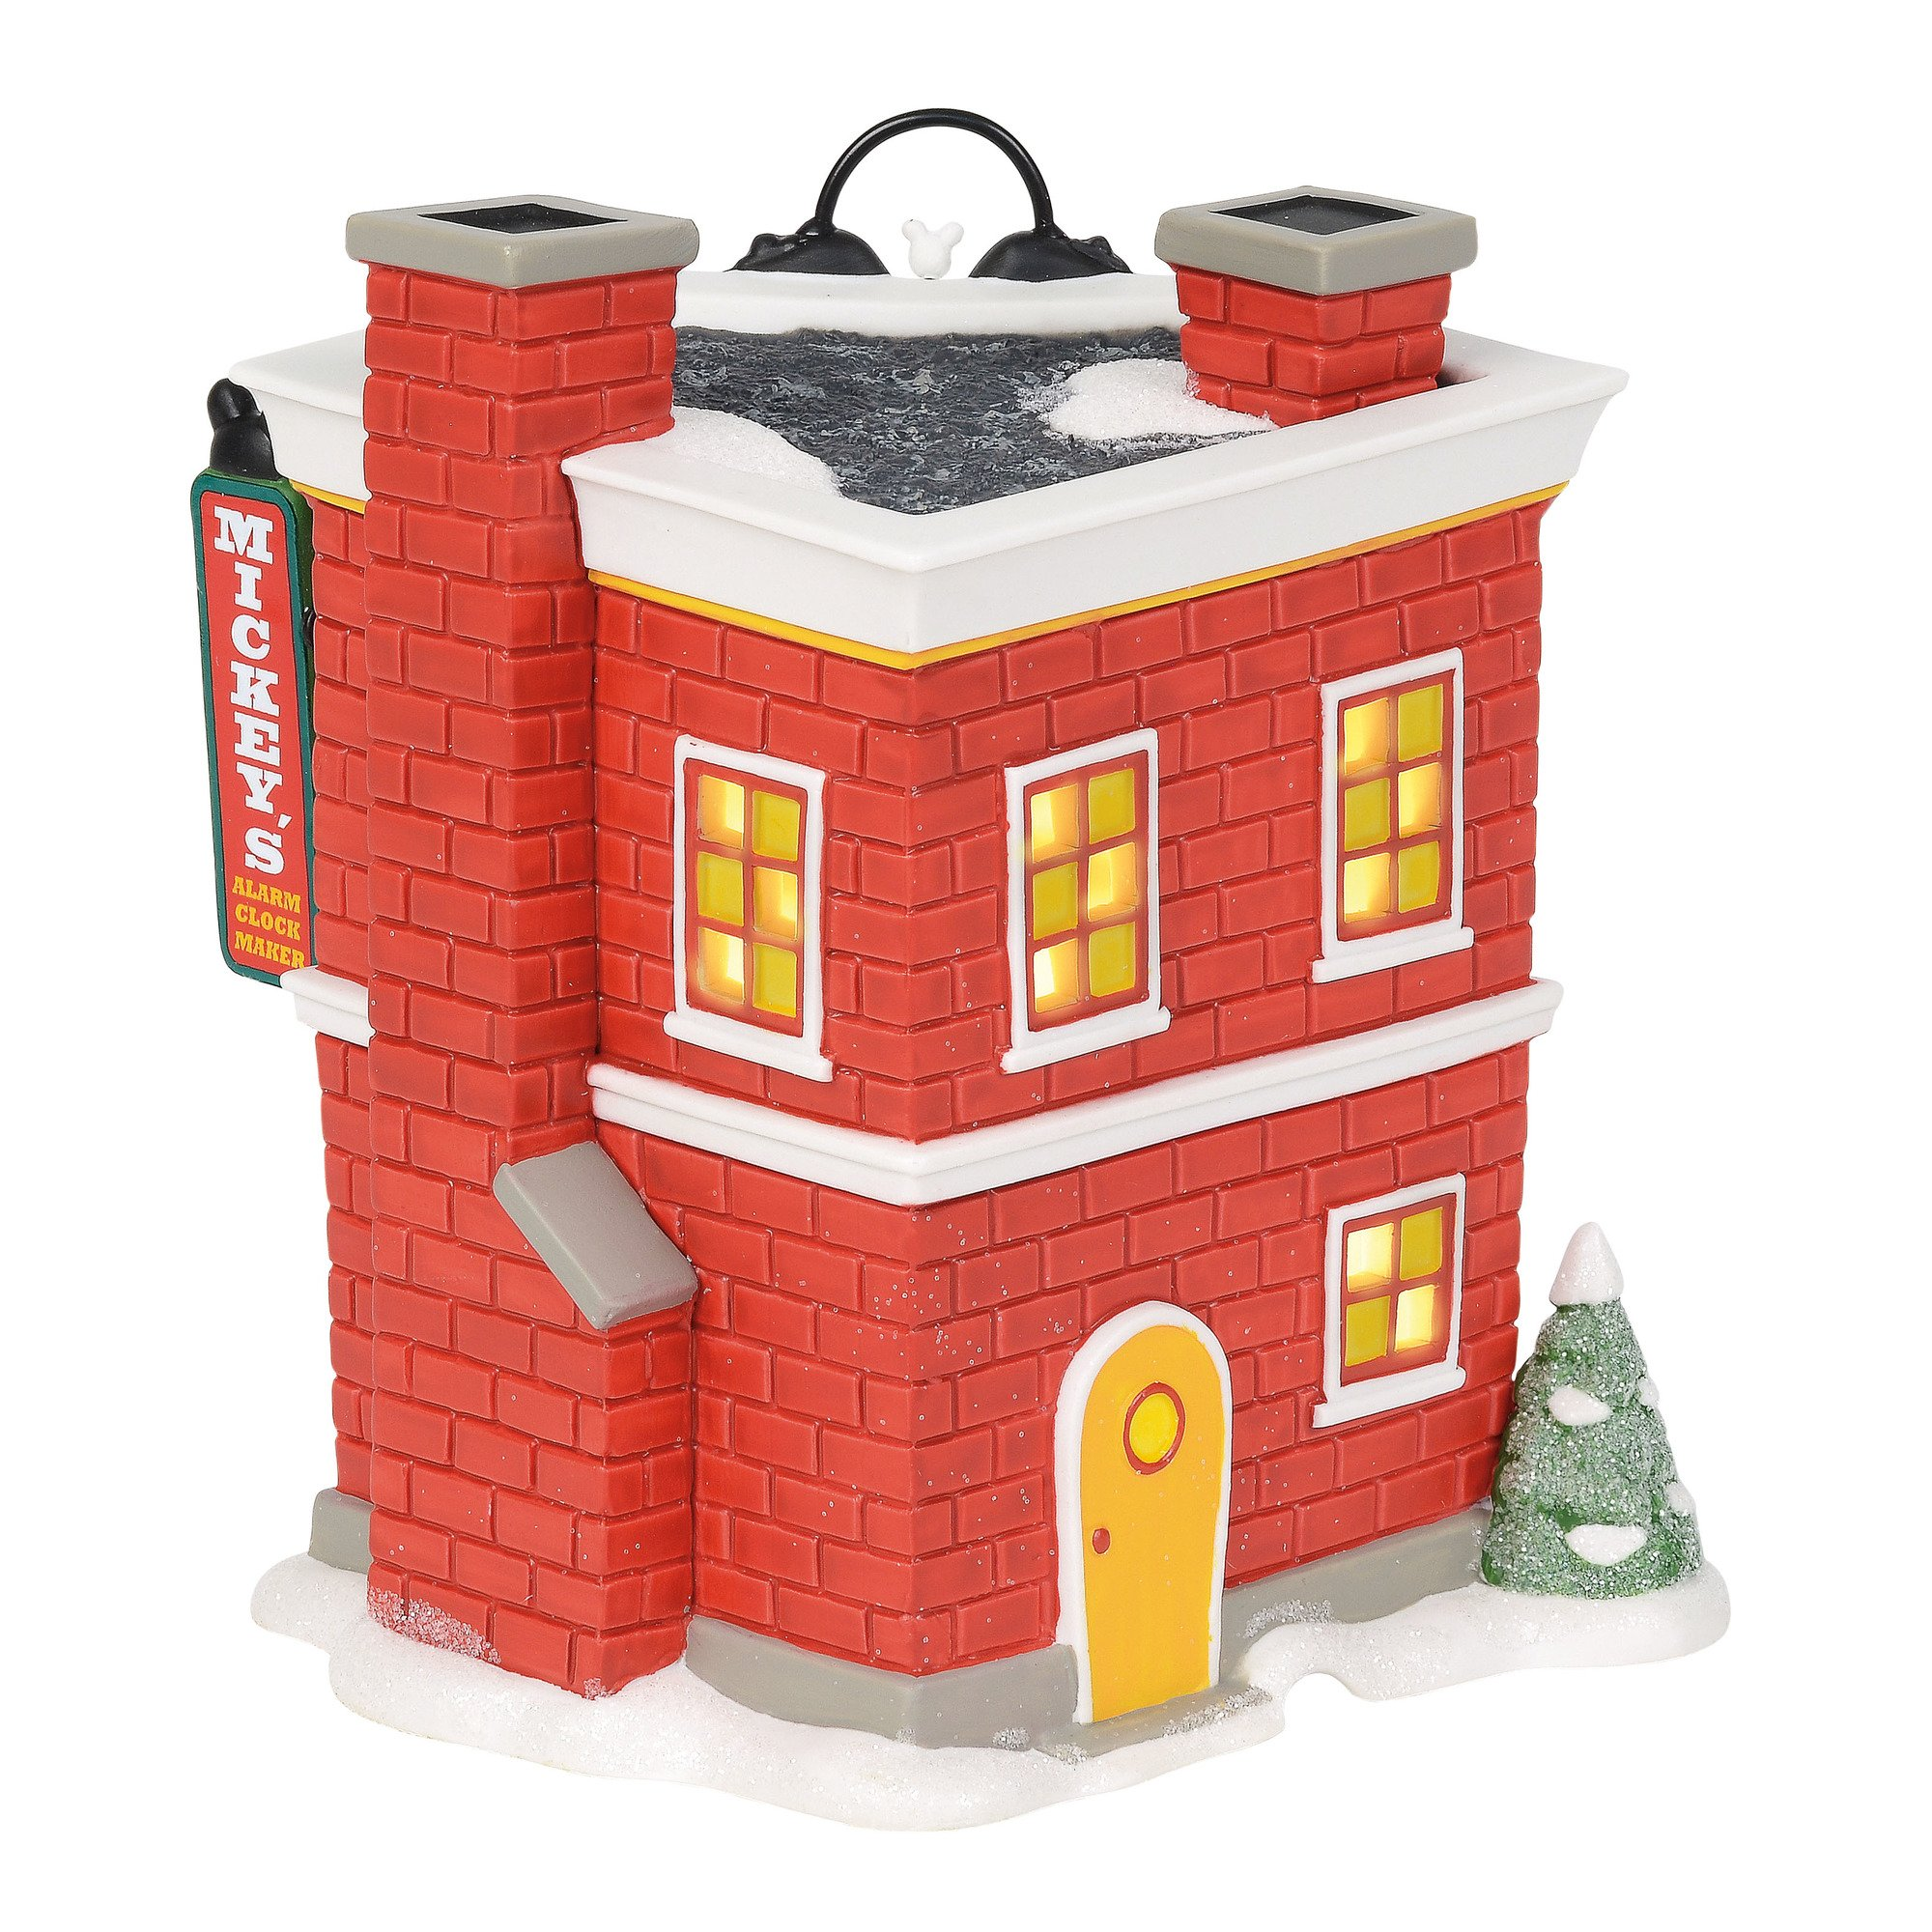 Department 56 Disney Village Mickey's Alarm Clock Shop Lit Building, Multicolor